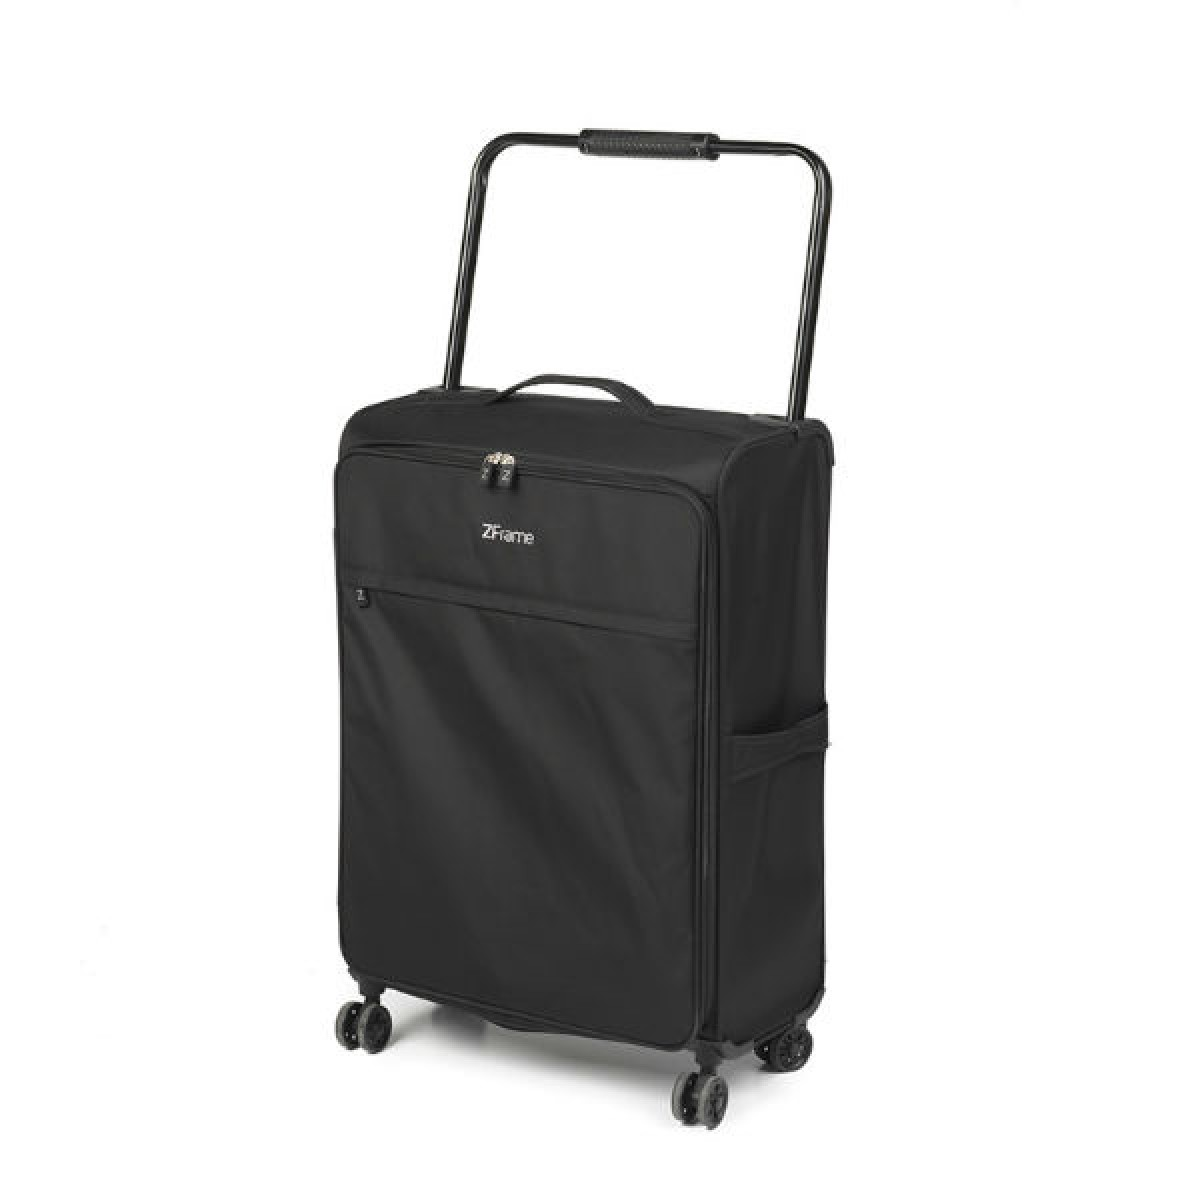 Zframe Black Double Wheel Luggage 22